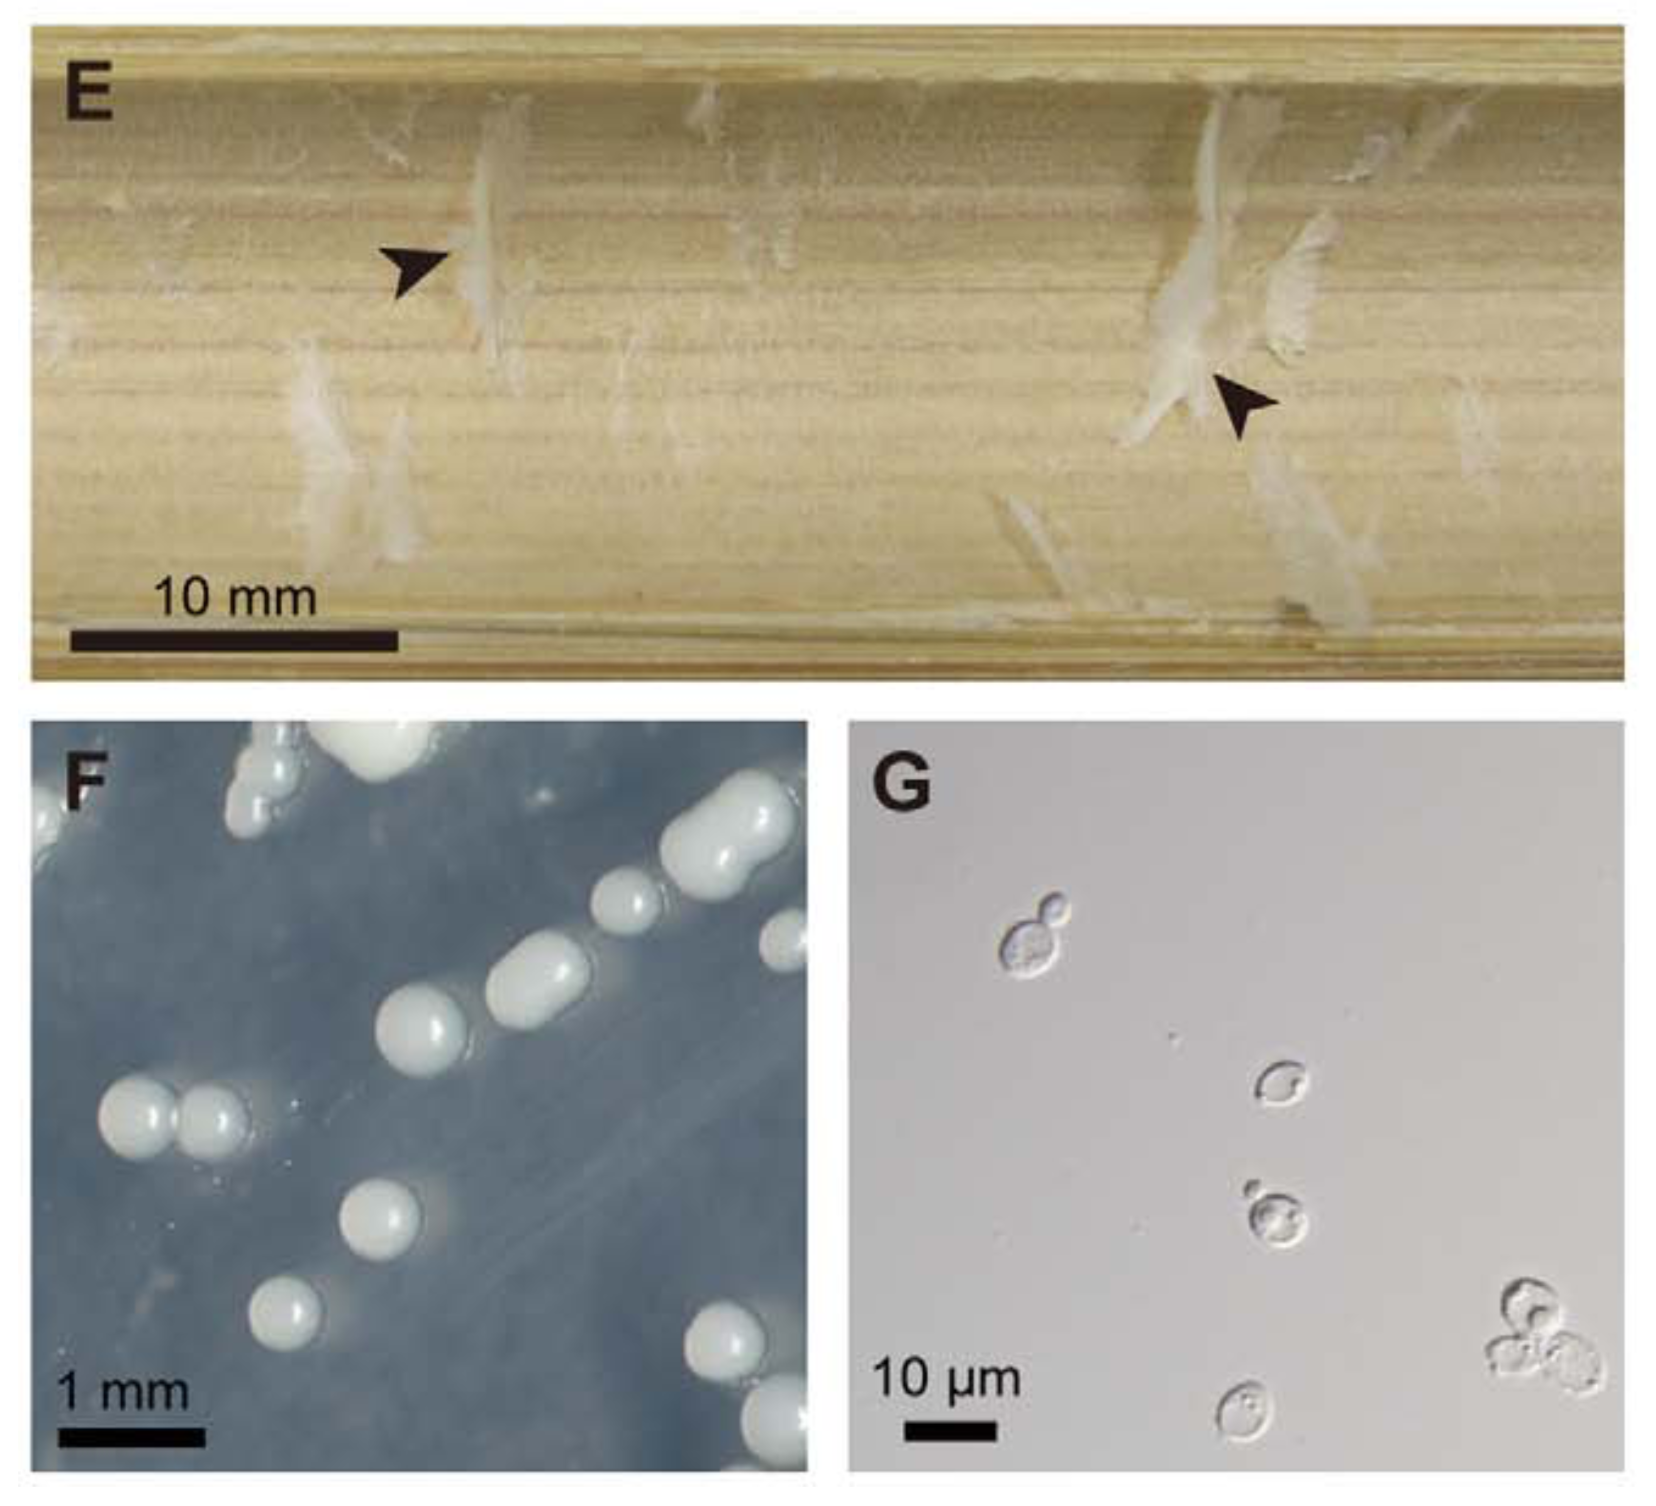 (E) Steril bamboo with pith tissue (arrows). (F) colonies of  Wickerhamomyces anomalus. (G) individual yeast cells, note the one budding asexually. Toki et al. 2012 .